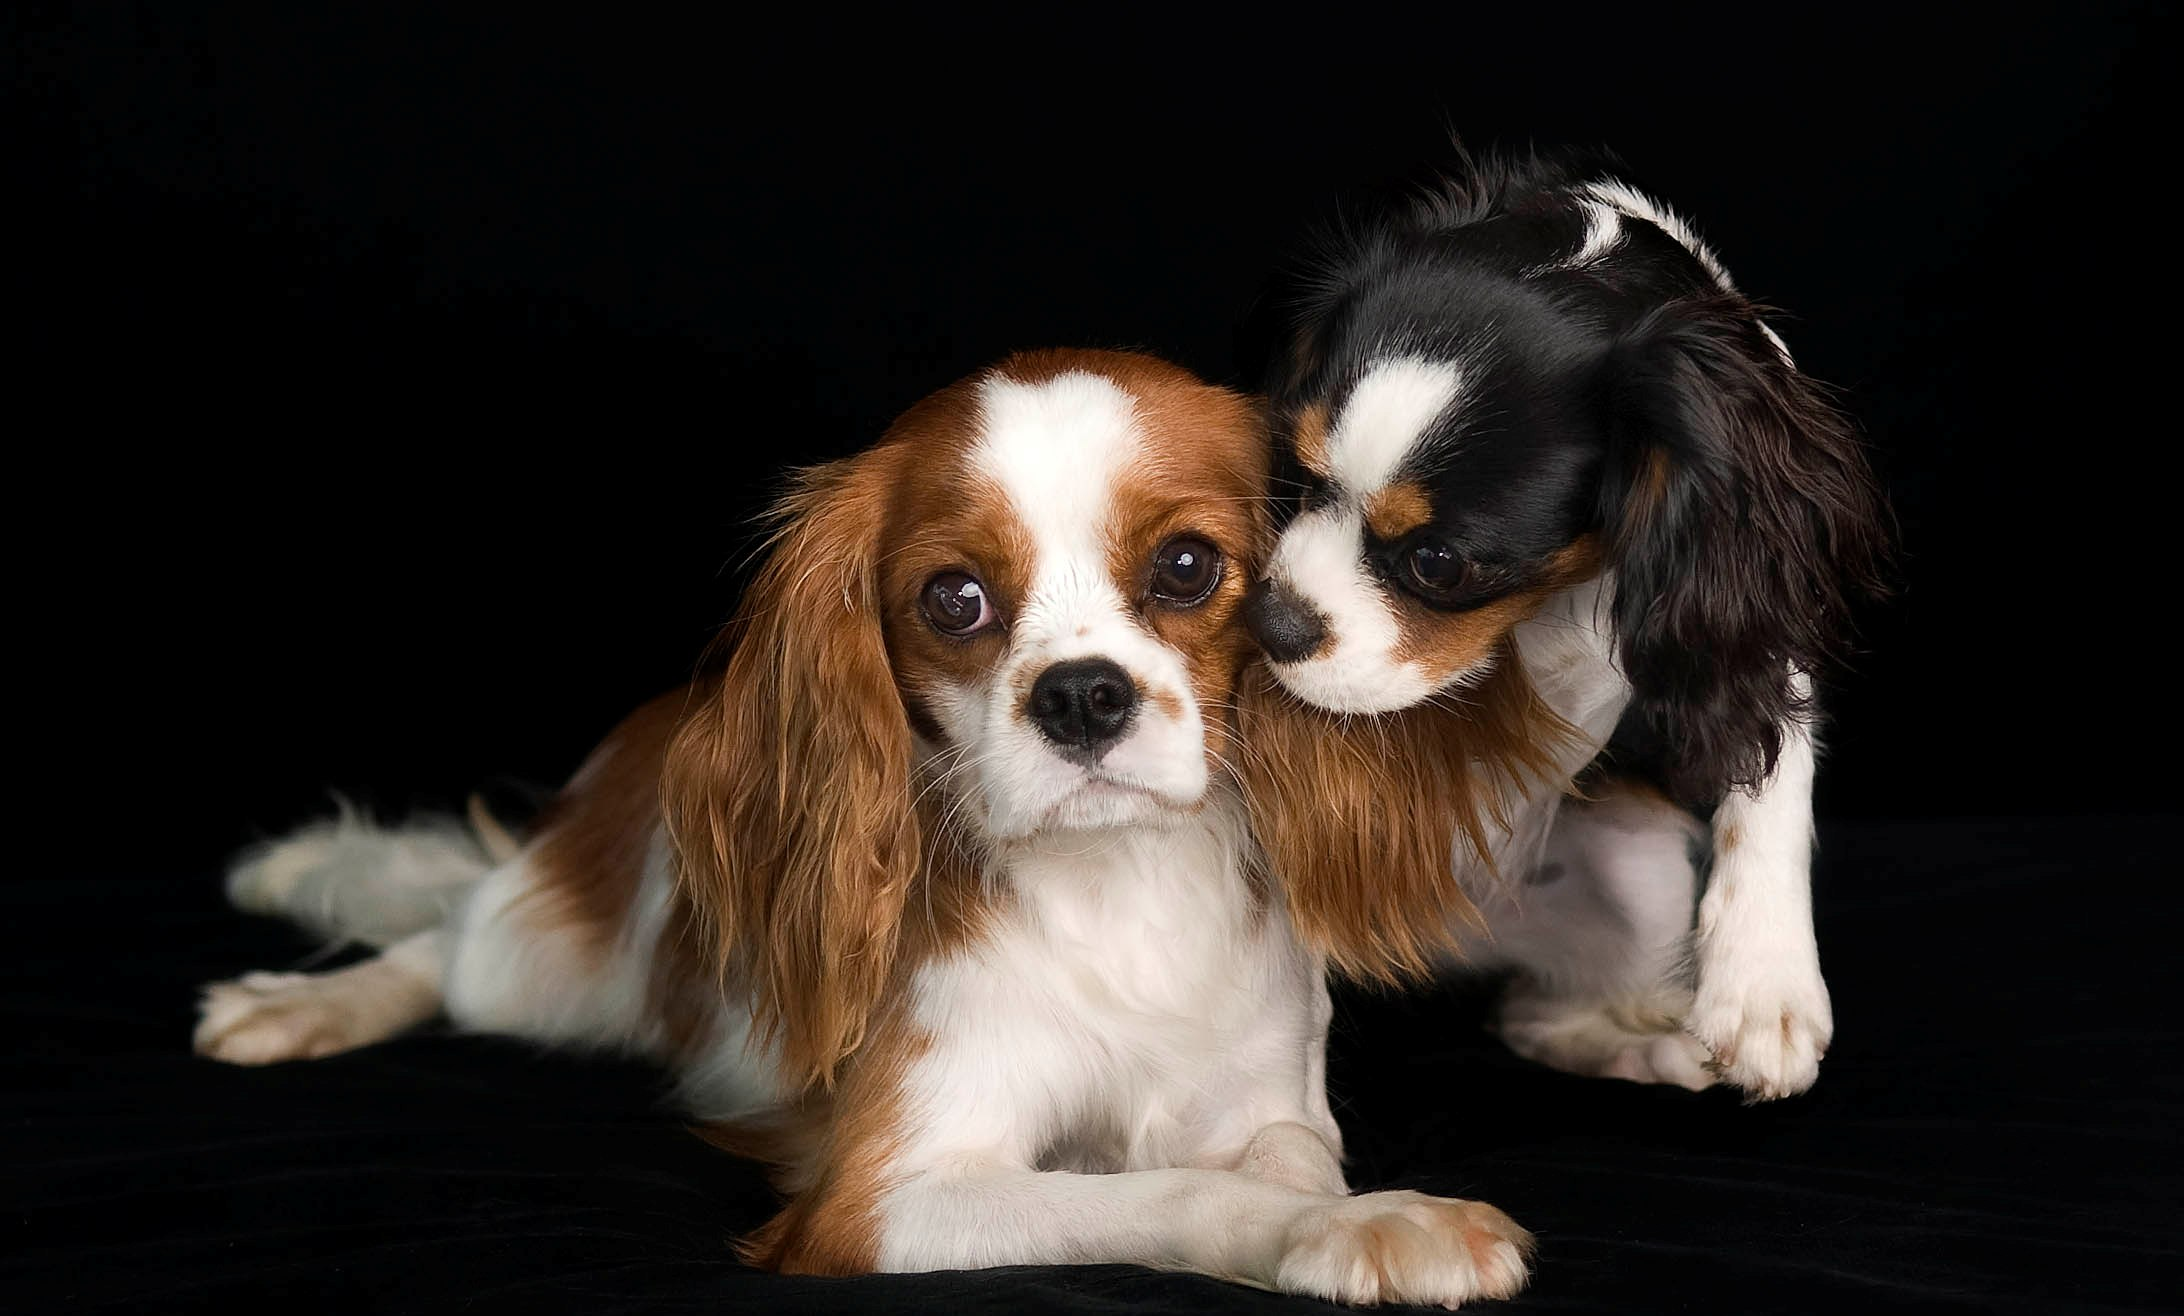 cavalier king charles spaniel top 10 dog breeds uk